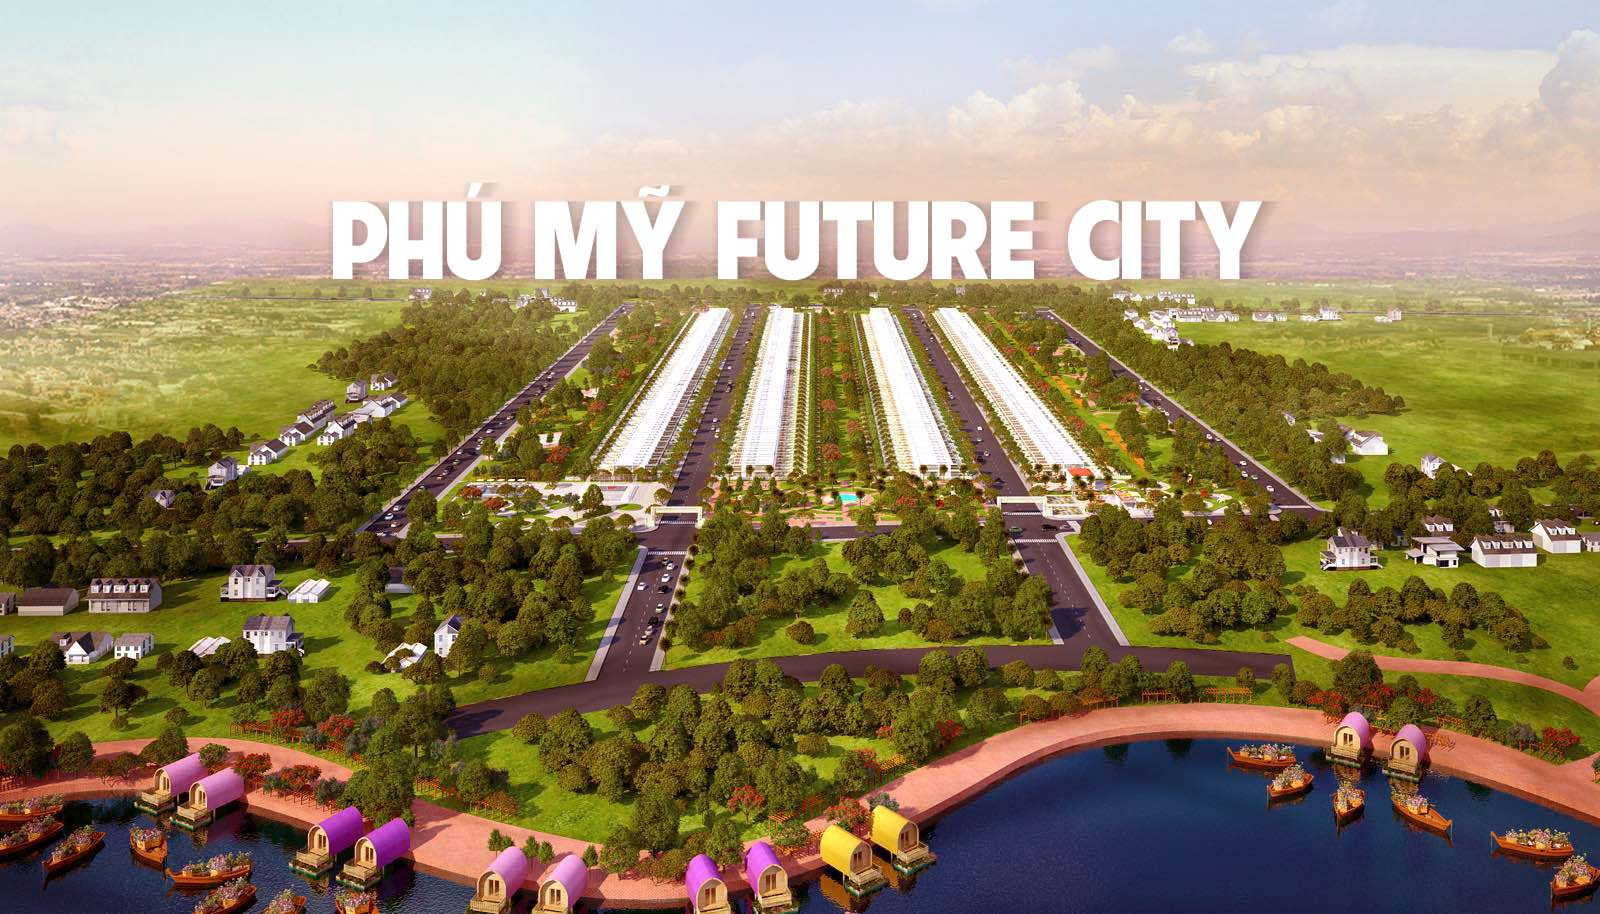 phu my future city 1 - PHÚ MỸ FUTURE CITY